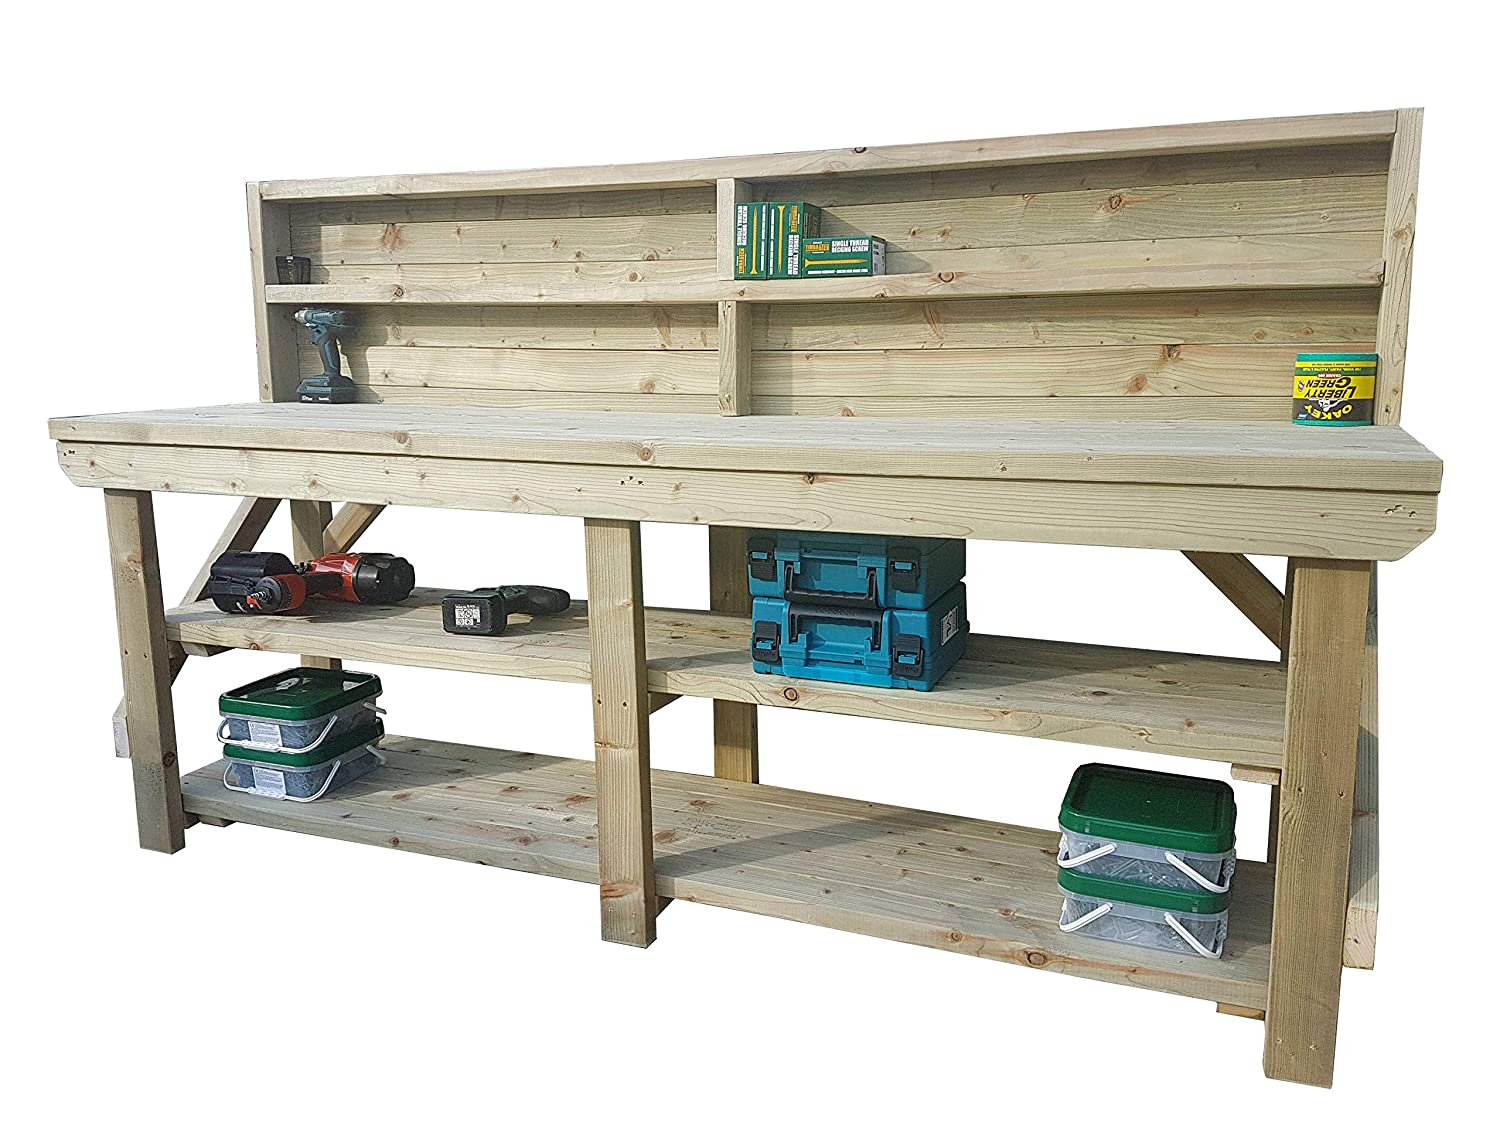 3FT Heavy Duty Handmade Garage Workshop Work Table Workbench With Double Shelf and Back Panel Indoor // Outdoor Pressure Treated